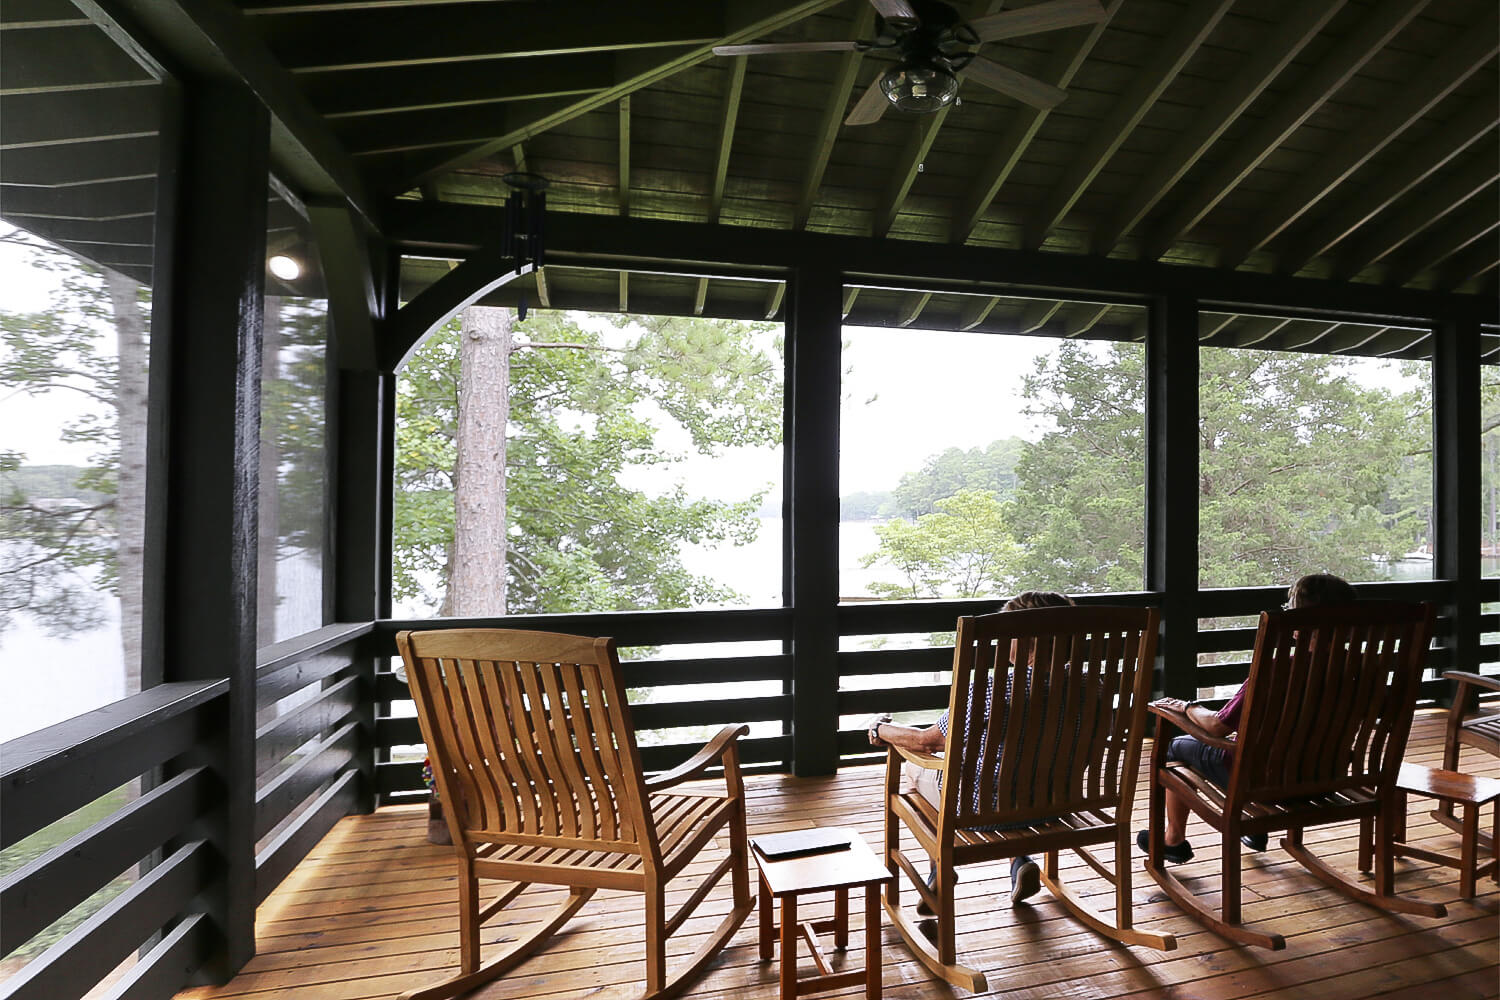 Lake Home - Screened Porch - Designed by Foshee Architecture